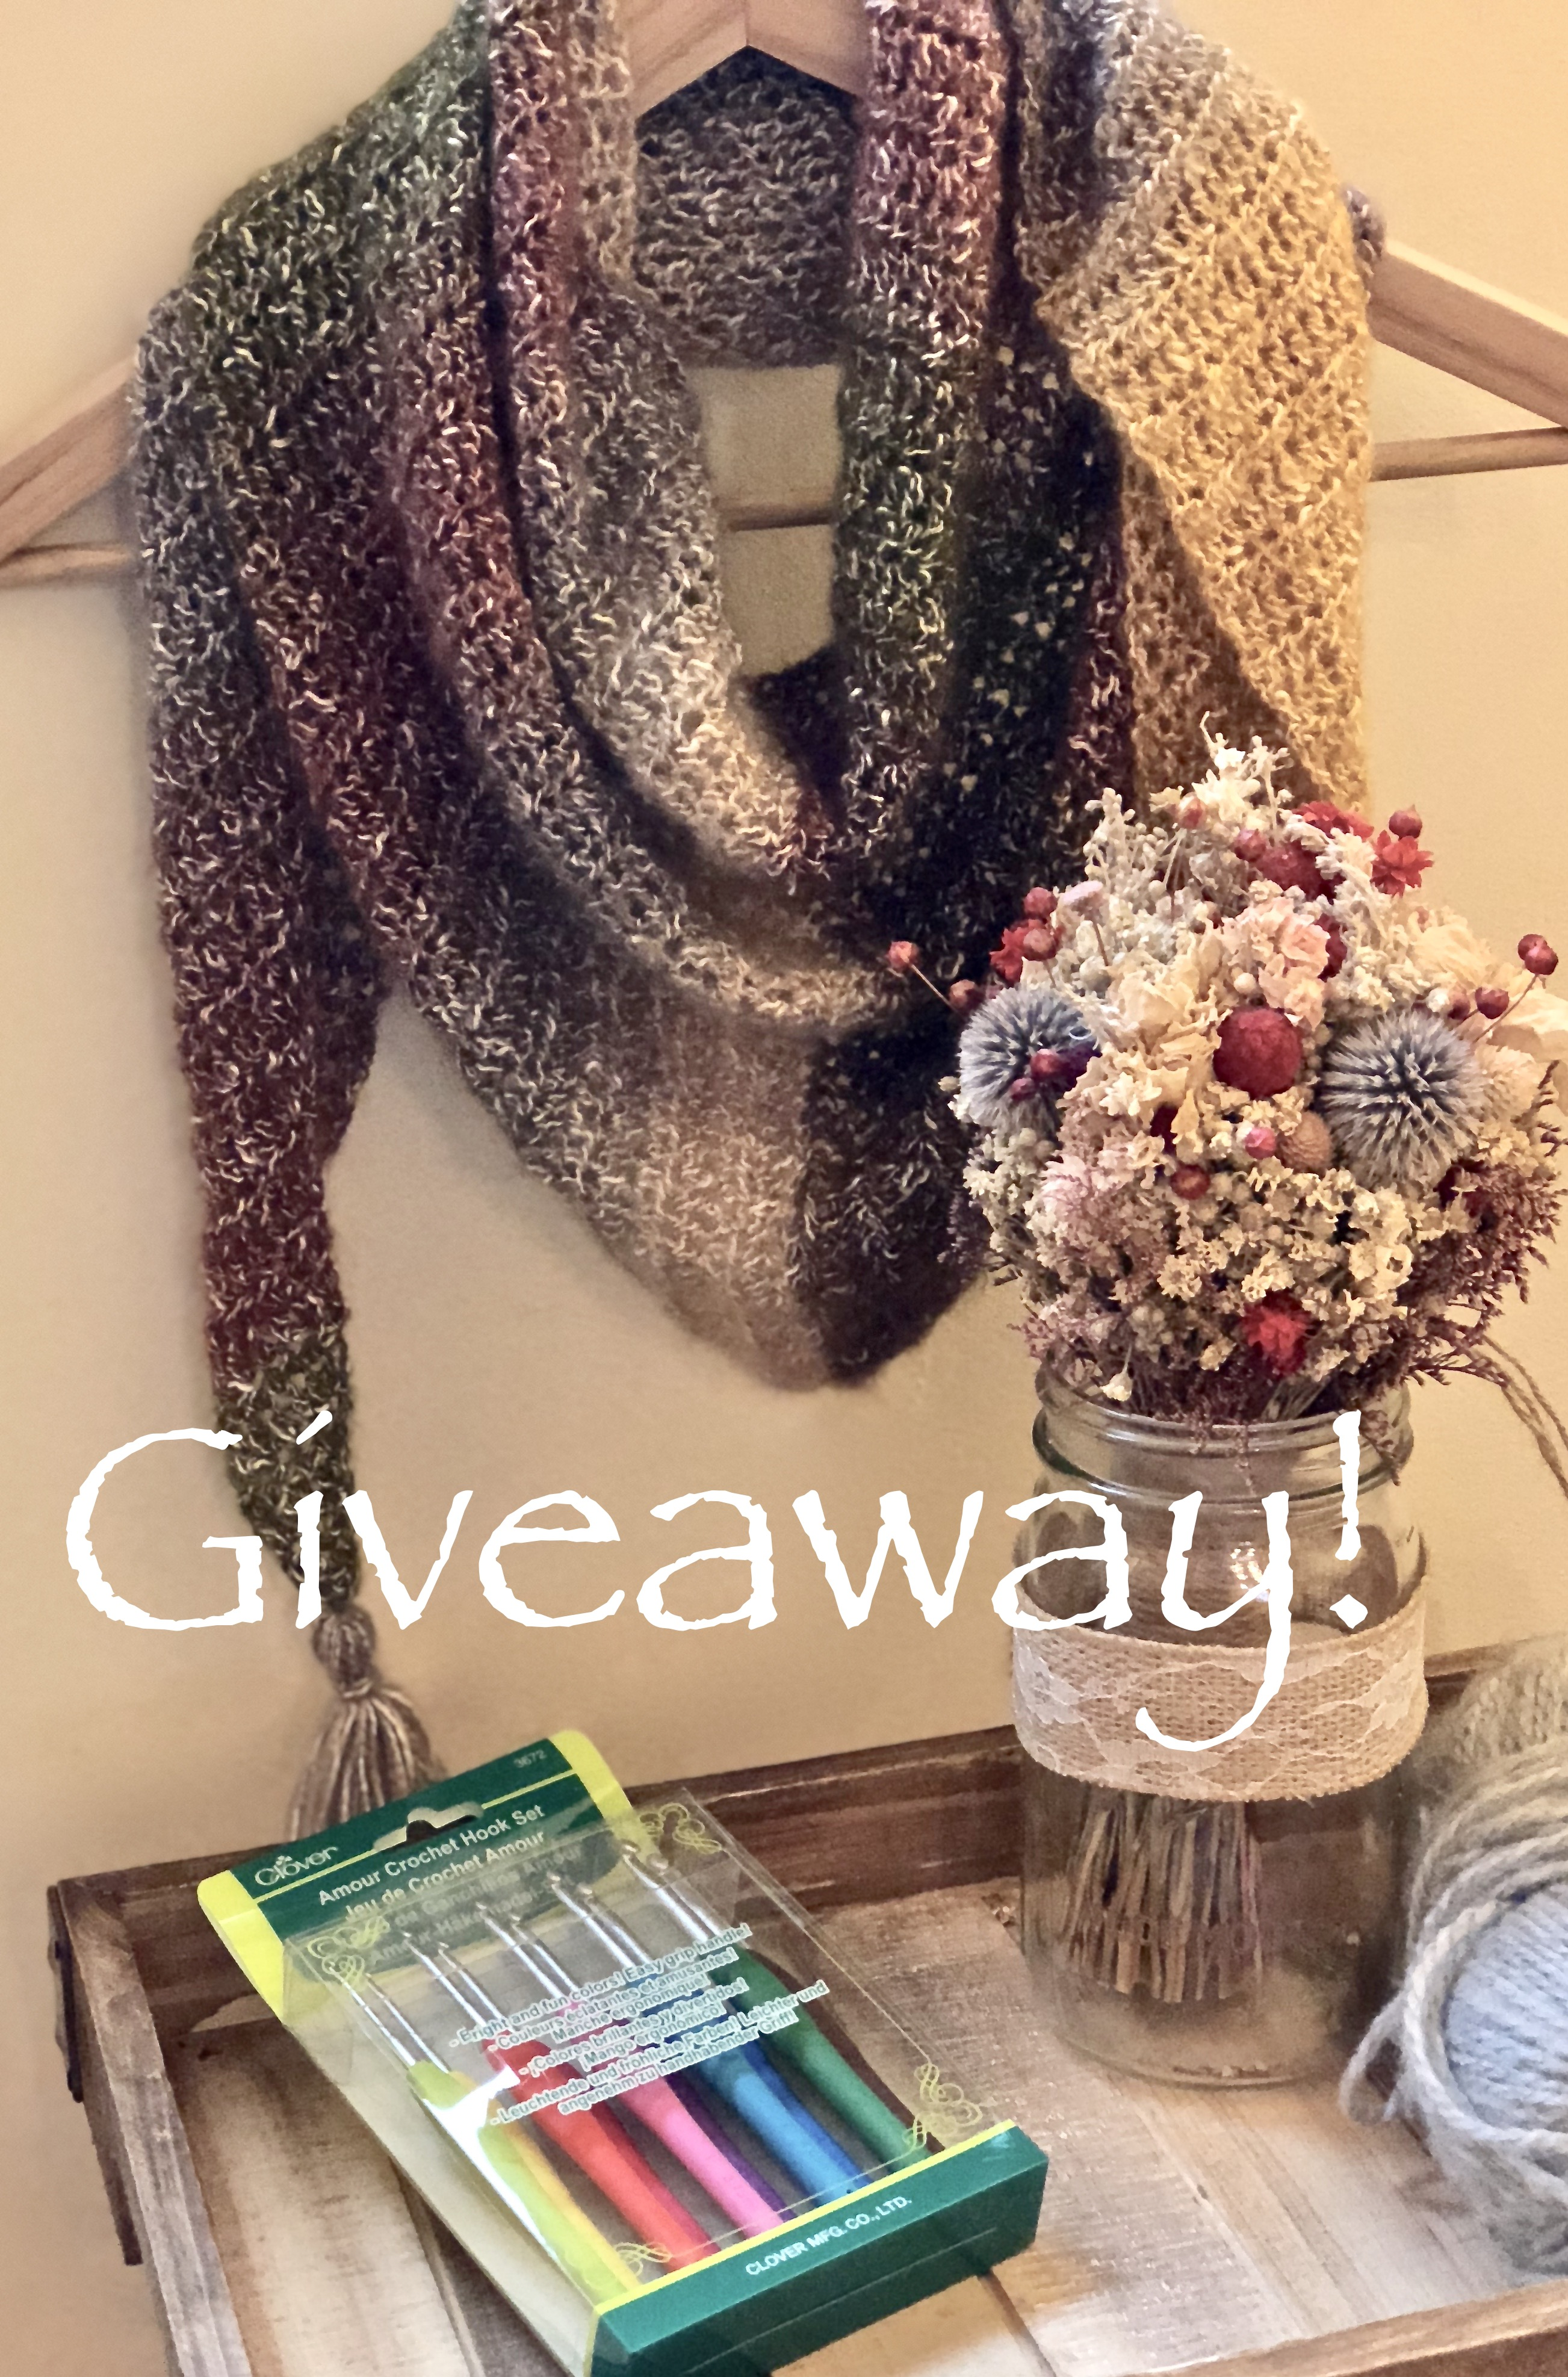 GIVEAWAY!!!